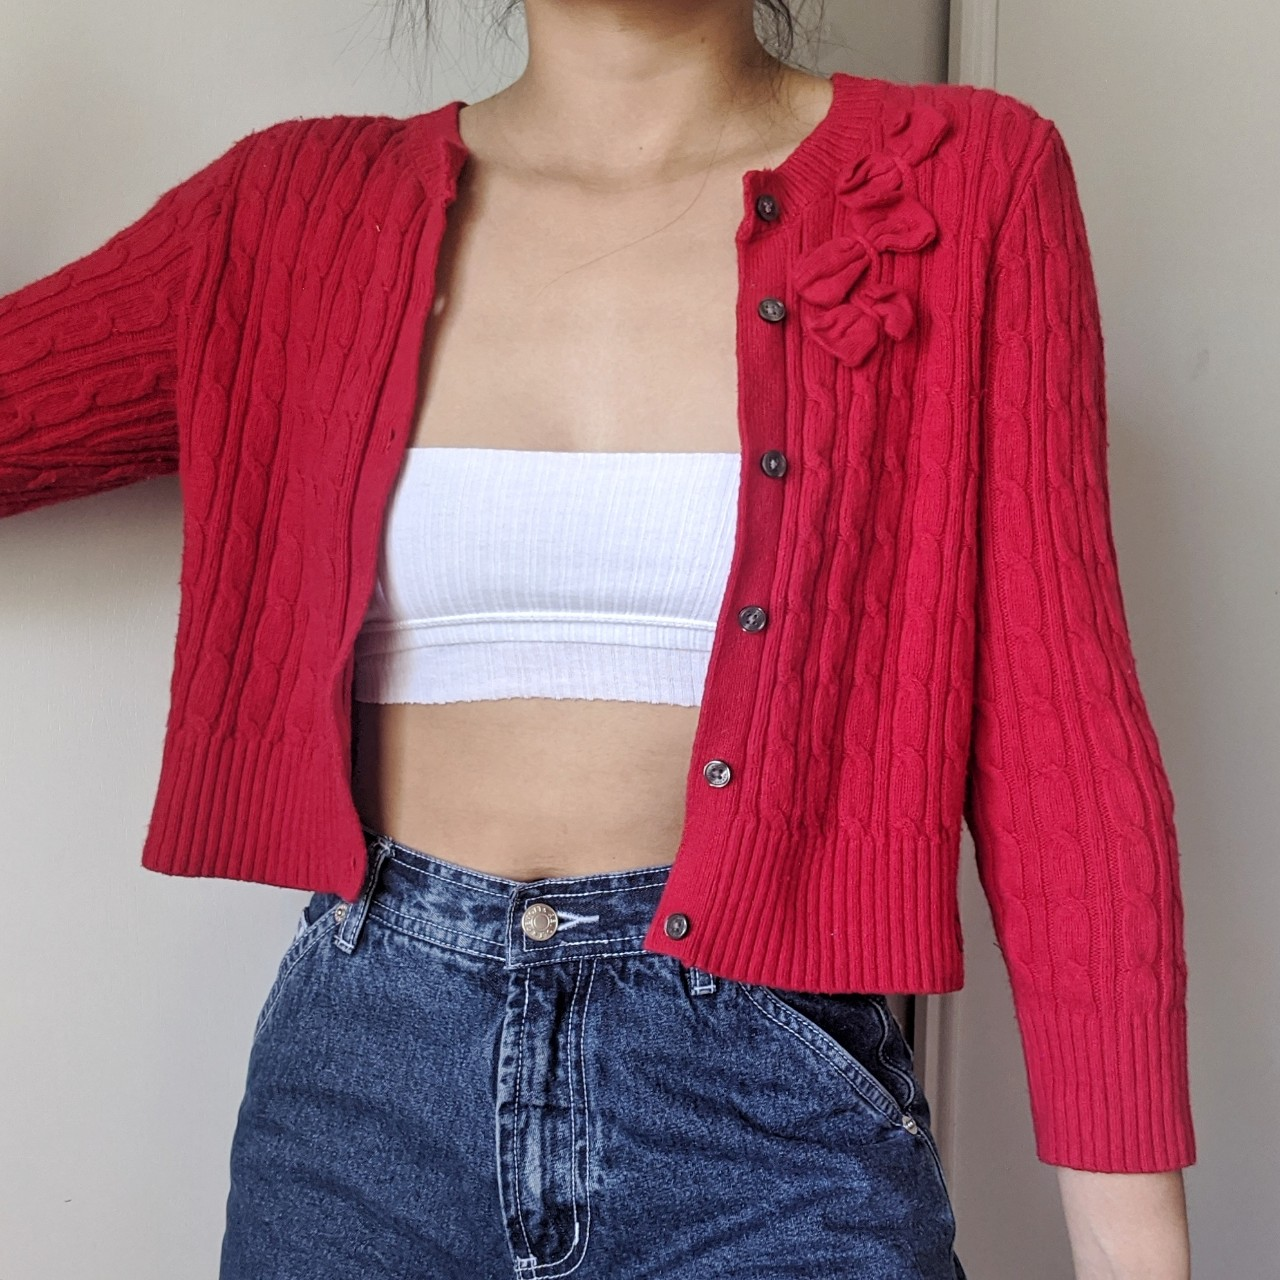 Gilly Hicks Sydney red knit button up cardigan with